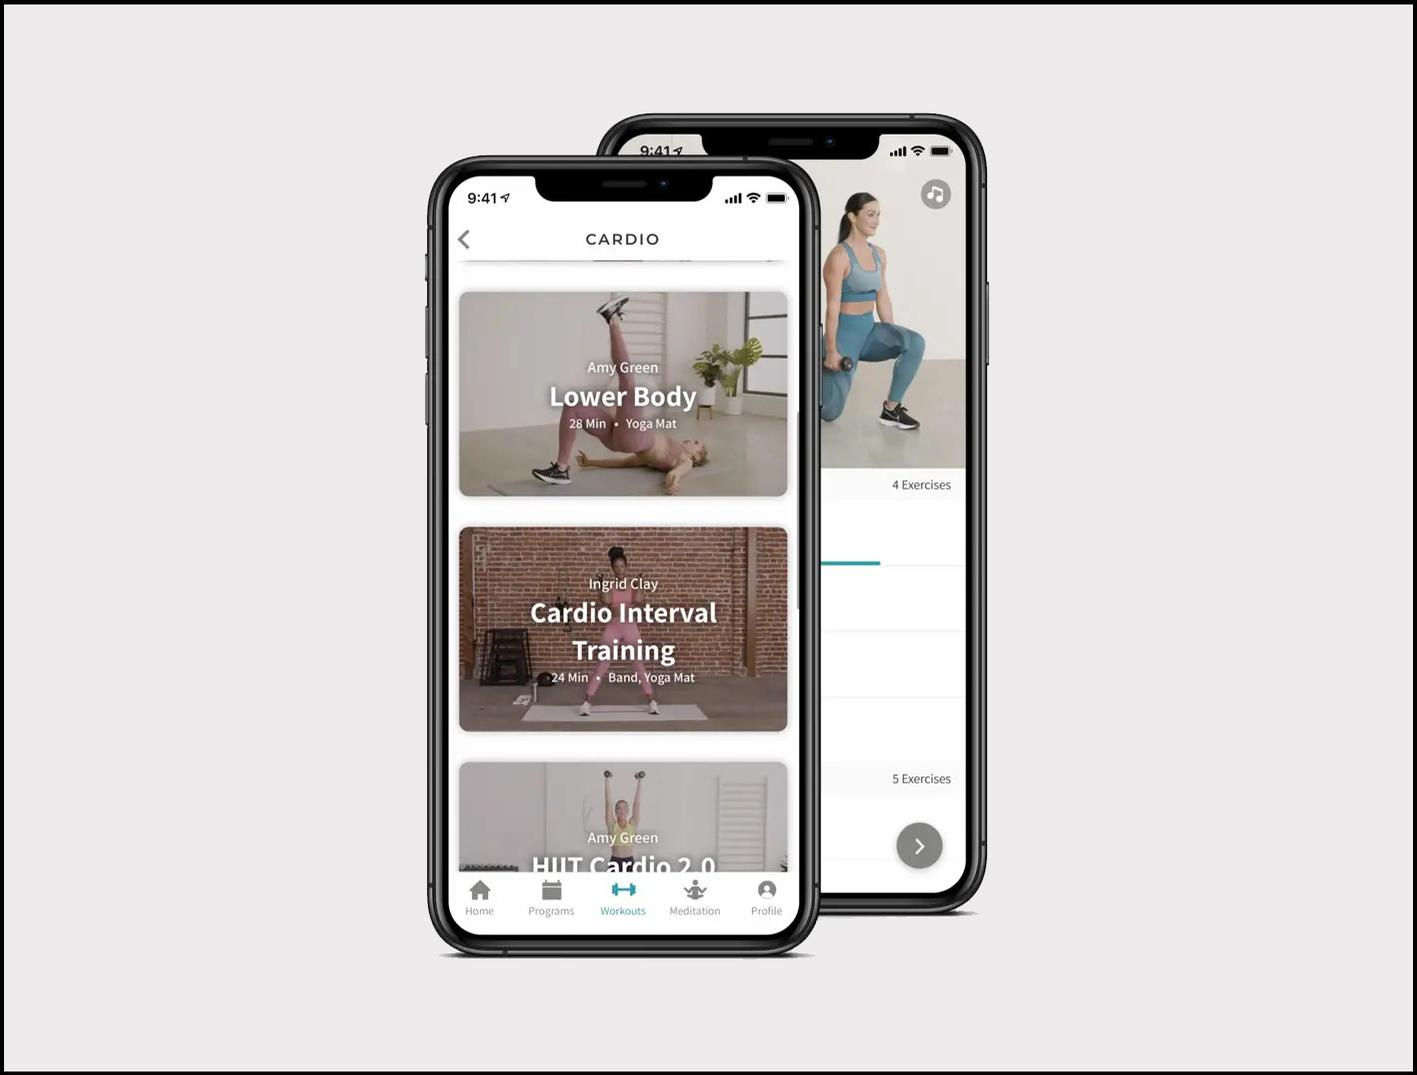 The workout content is accessible via a branded app / Fabletics